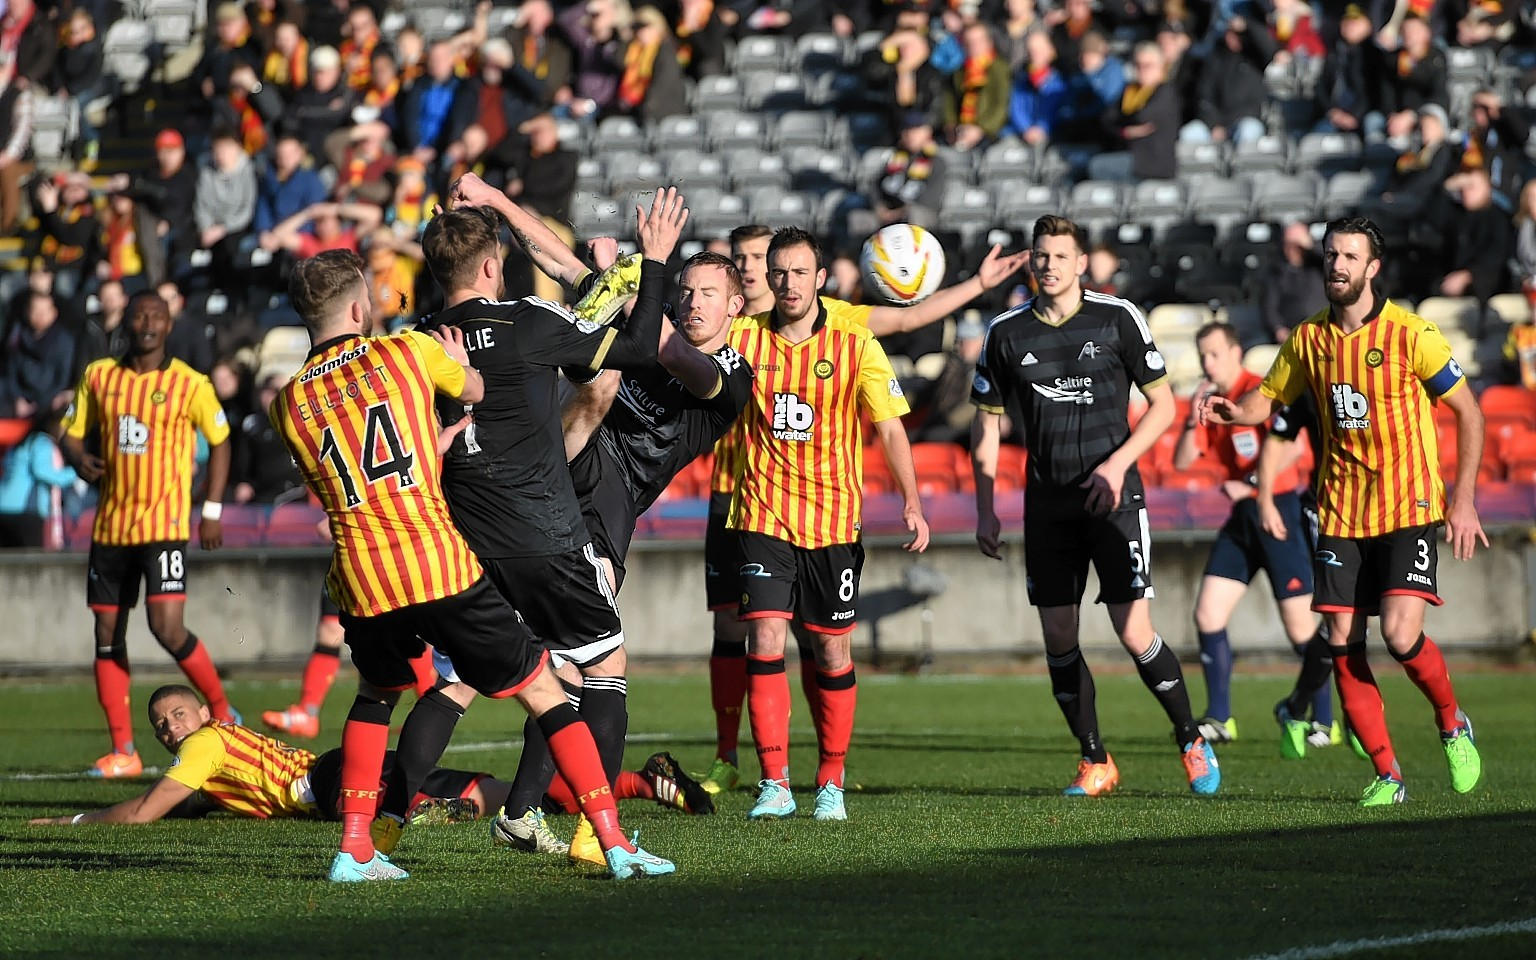 This first half Adam Rooney goal was chopped off for an alleged push.